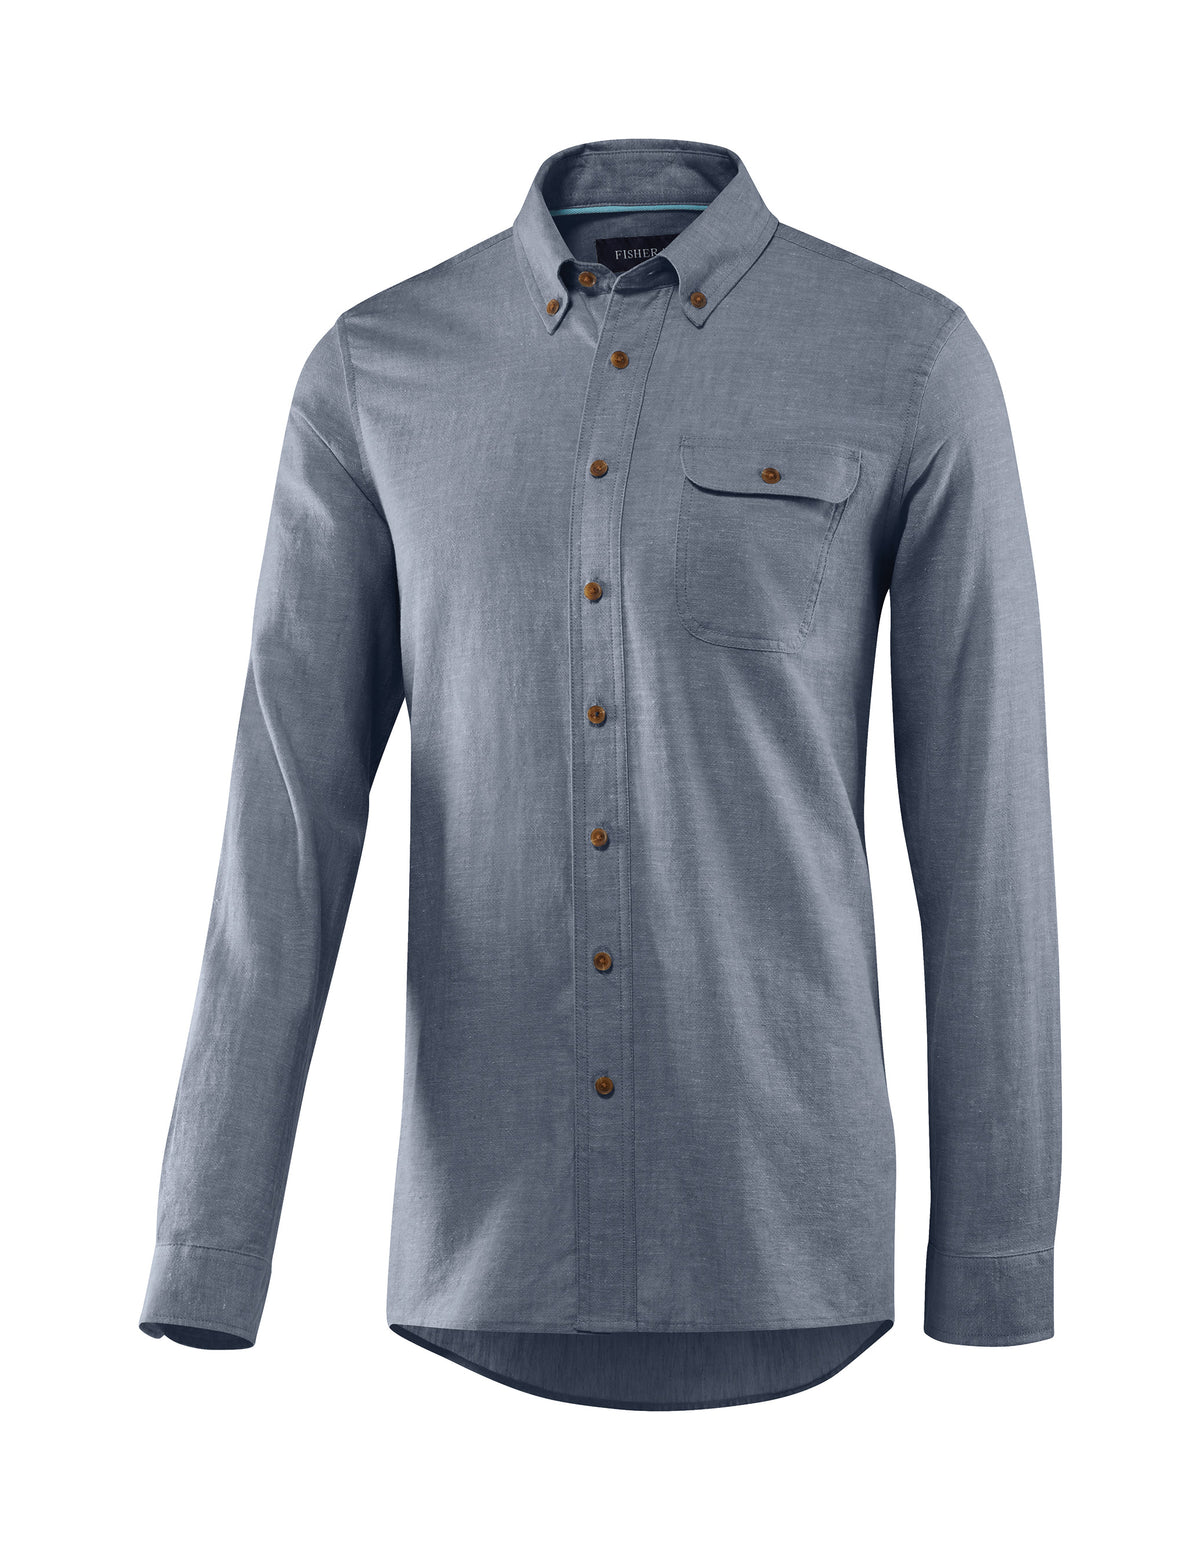 Men's Bastille Long Sleeve Button Down Hemp and Organic Cotton Shirt by Fisher + Baker Insignia